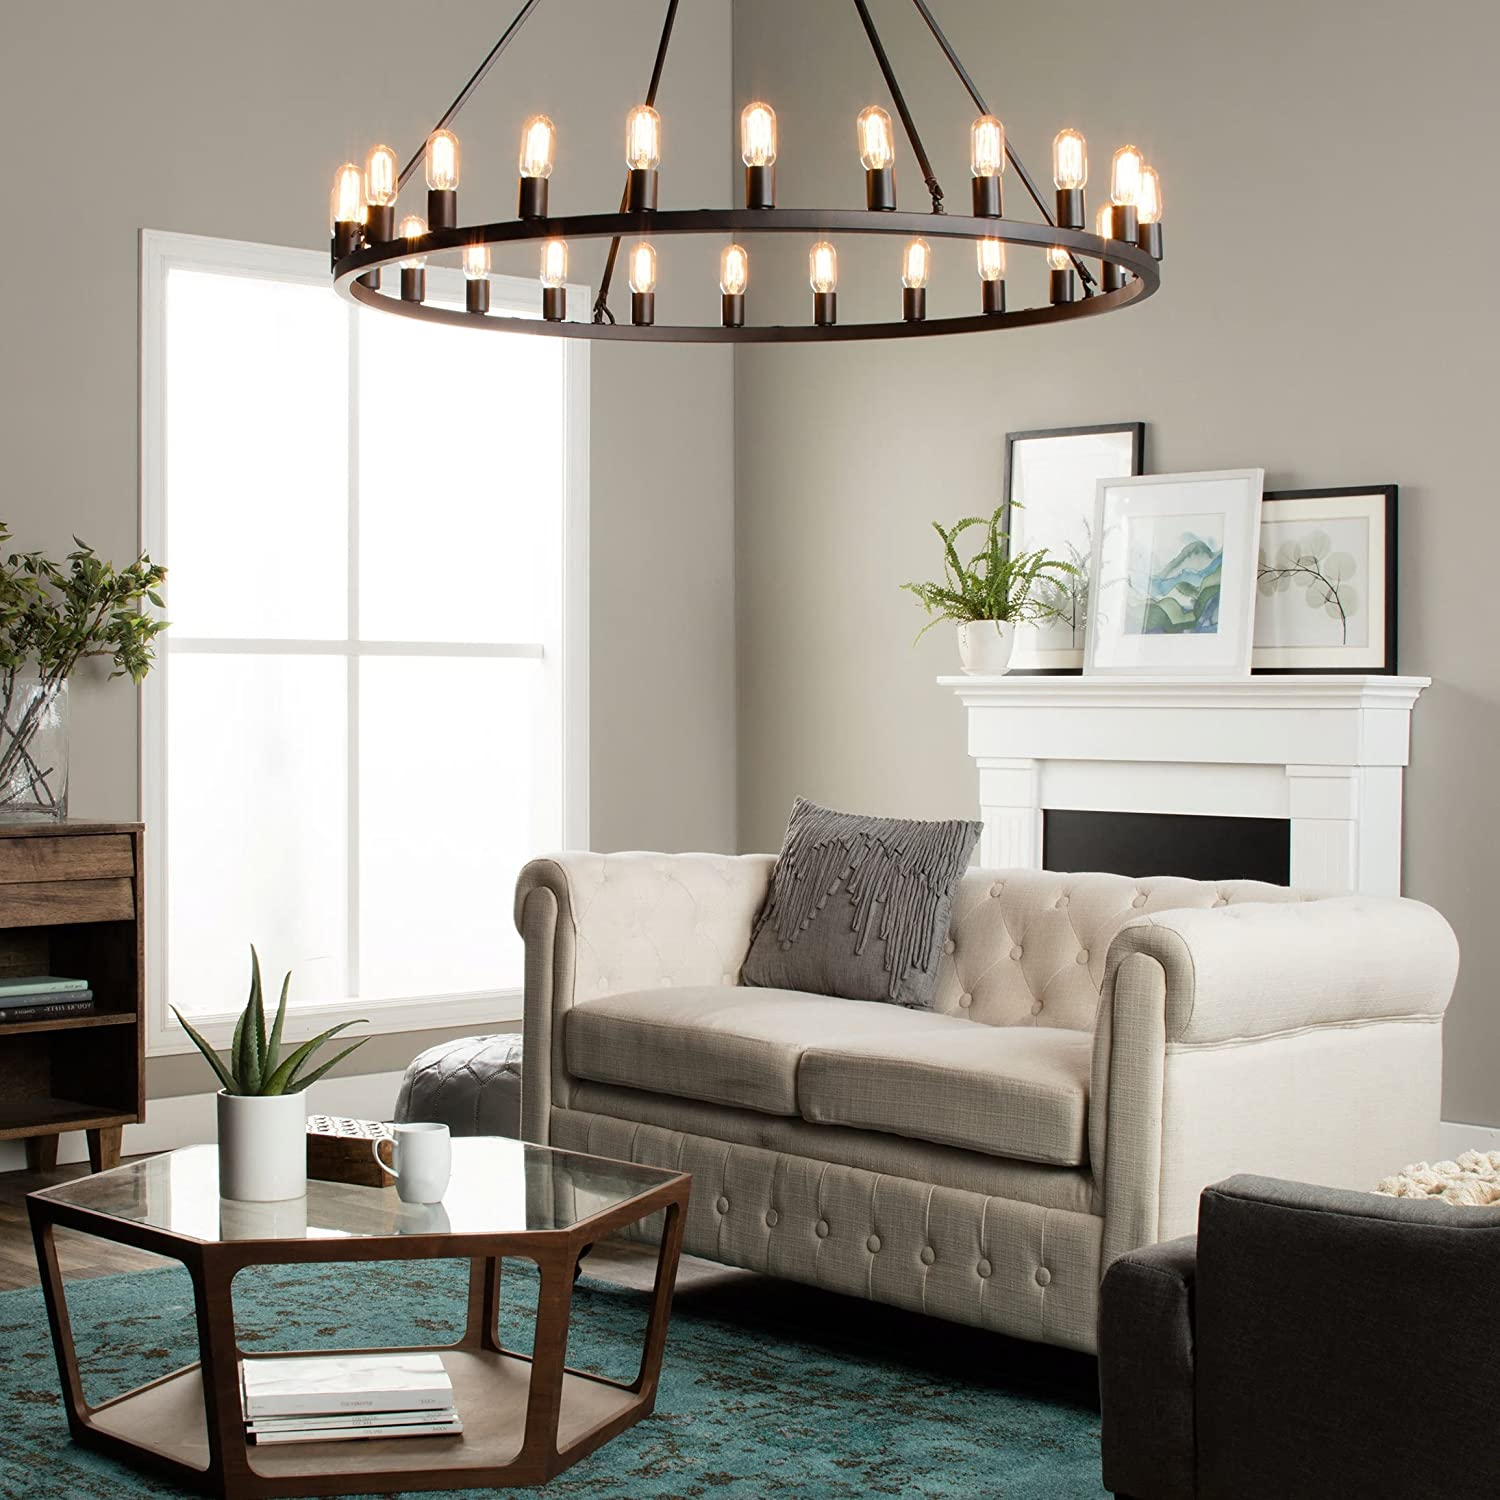 Rustic Chandelier Centerpiece With Bulbs For Modern Farmhouse Lighting 48 Oversized Large Round Pendant Lamp Provides Ample Illumination Oil Rubbed